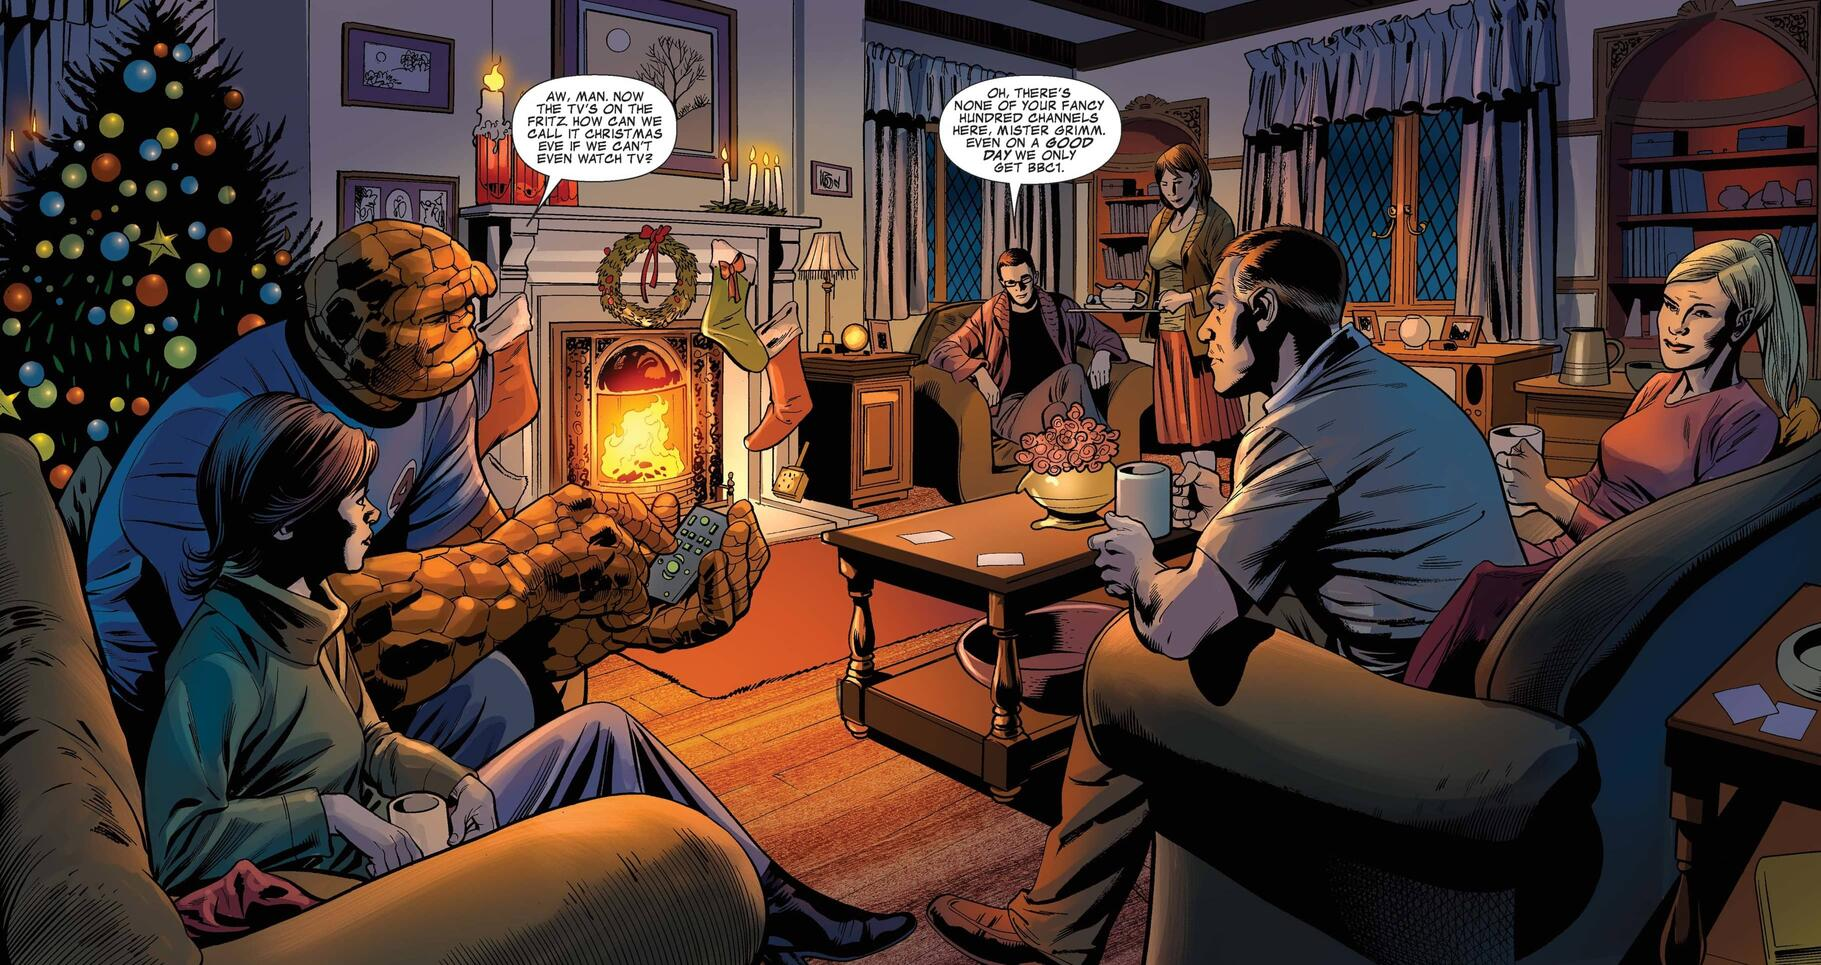 The Fantastic Four gather round the fire in a cozy holiday scene.